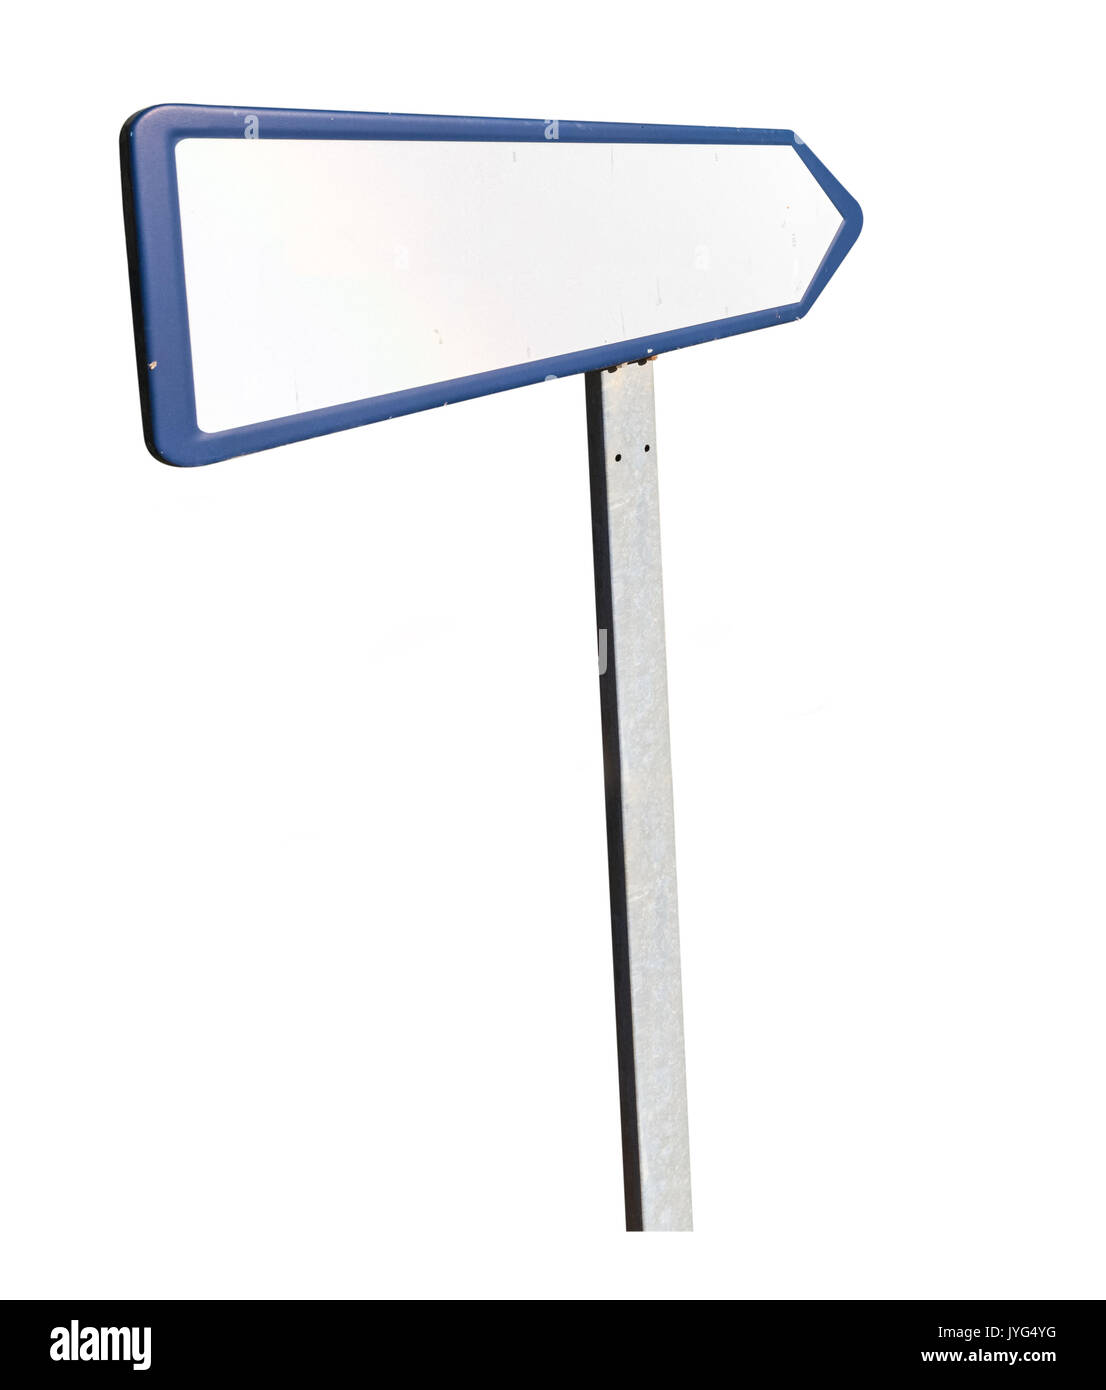 Blank road sign in perspective - Stock Image